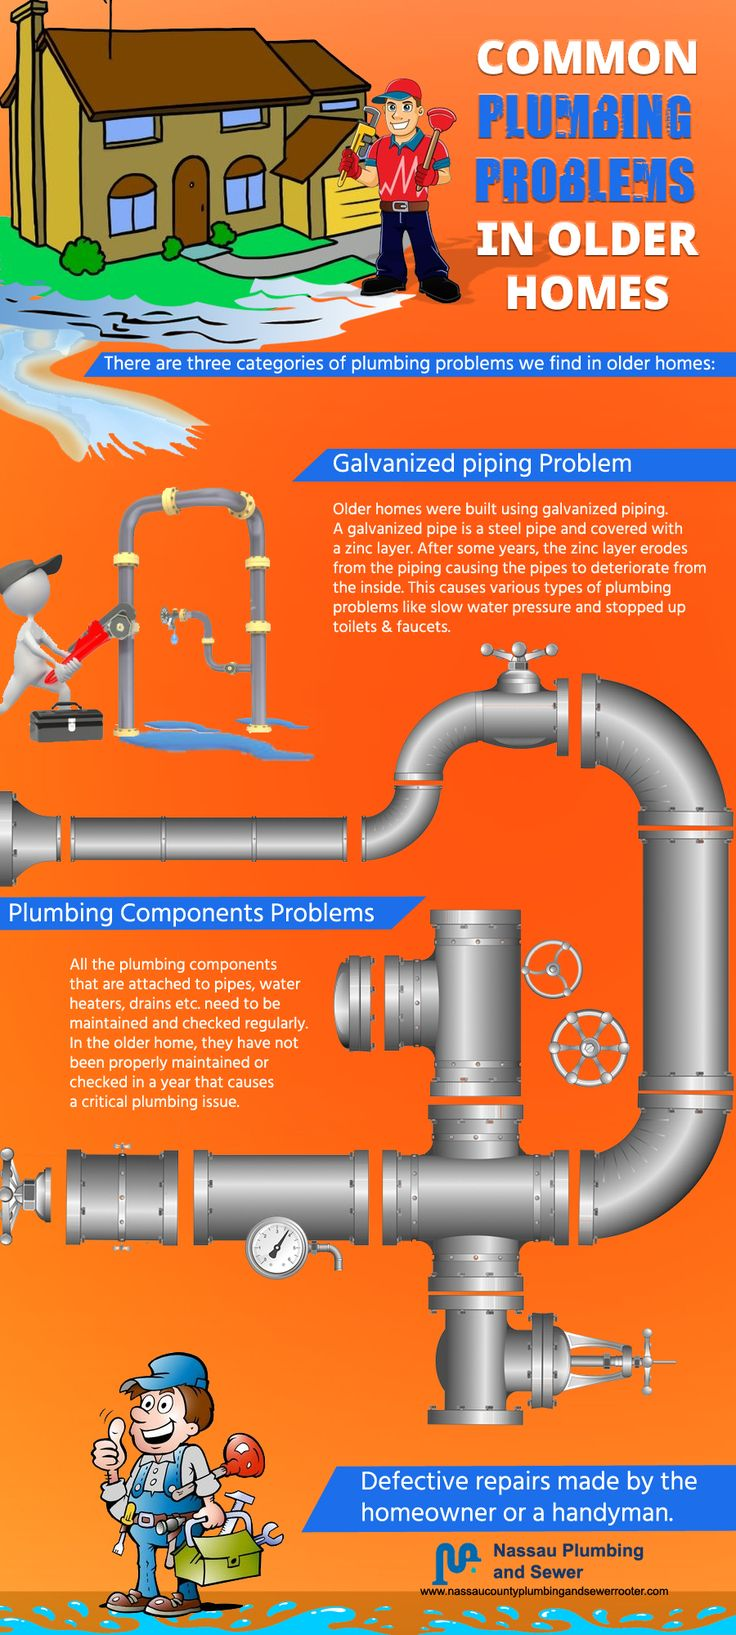 Common Plumbing Problems in Older Homes - Infographic  There are three categories of plumbing problems we find in older homes:  1.Galvanized piping Problem: Older homes were built using galvanized piping. A galvanized pipe is a steel pipe and covered with a zinc layer. After some years, the zinc layer erodes from the piping causing the pipes to deteriorate from the inside. This causes various types of plumbing problems like slow water pressure and stopped up toilets & faucets. 2.Plumbing…